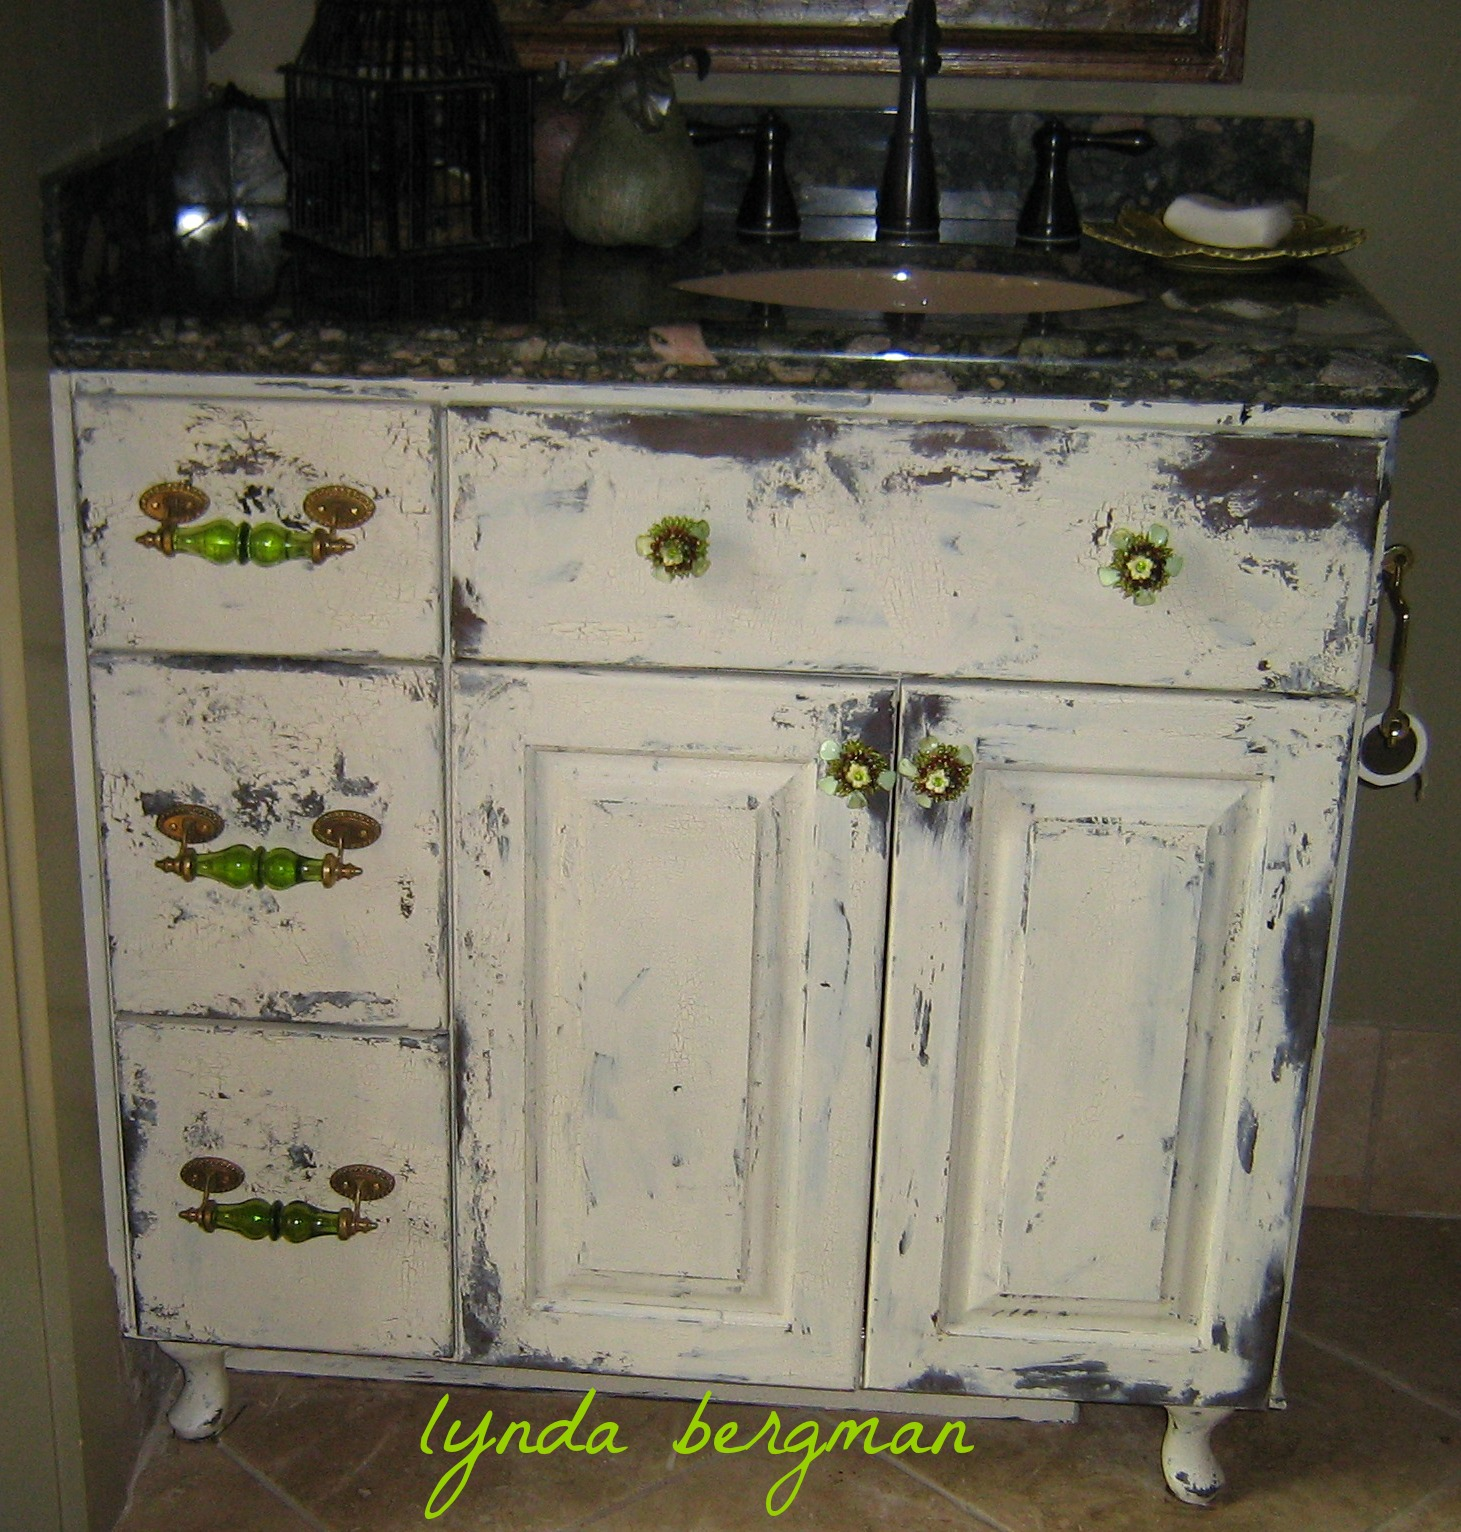 Lynda Bergman Decorative Artisan Painting Distressing A New Bath Cabinet To Match An Old